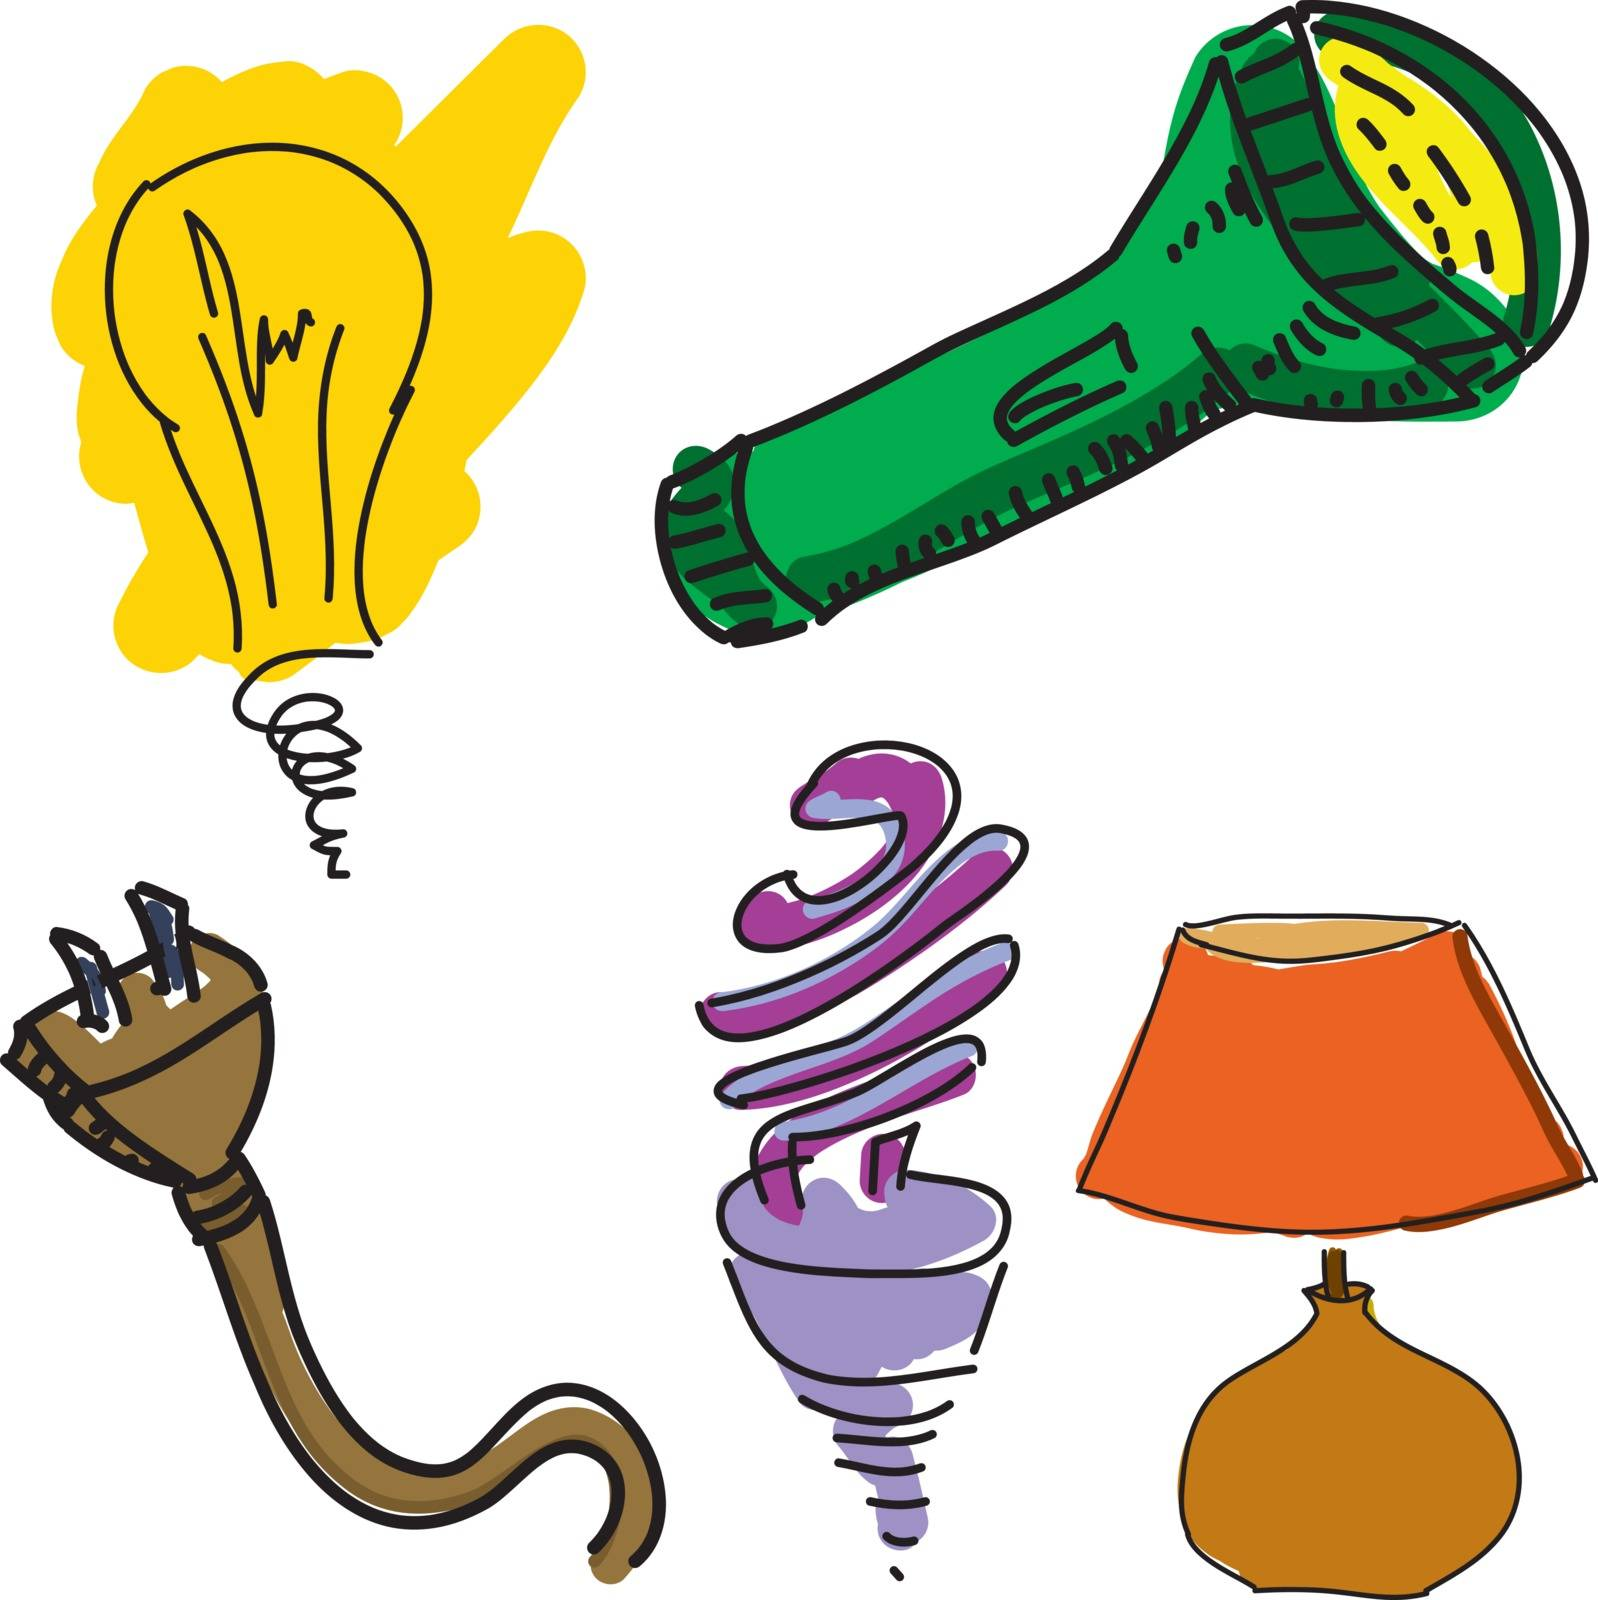 Drawn light equipment on white background, close-up view. Vector illustration